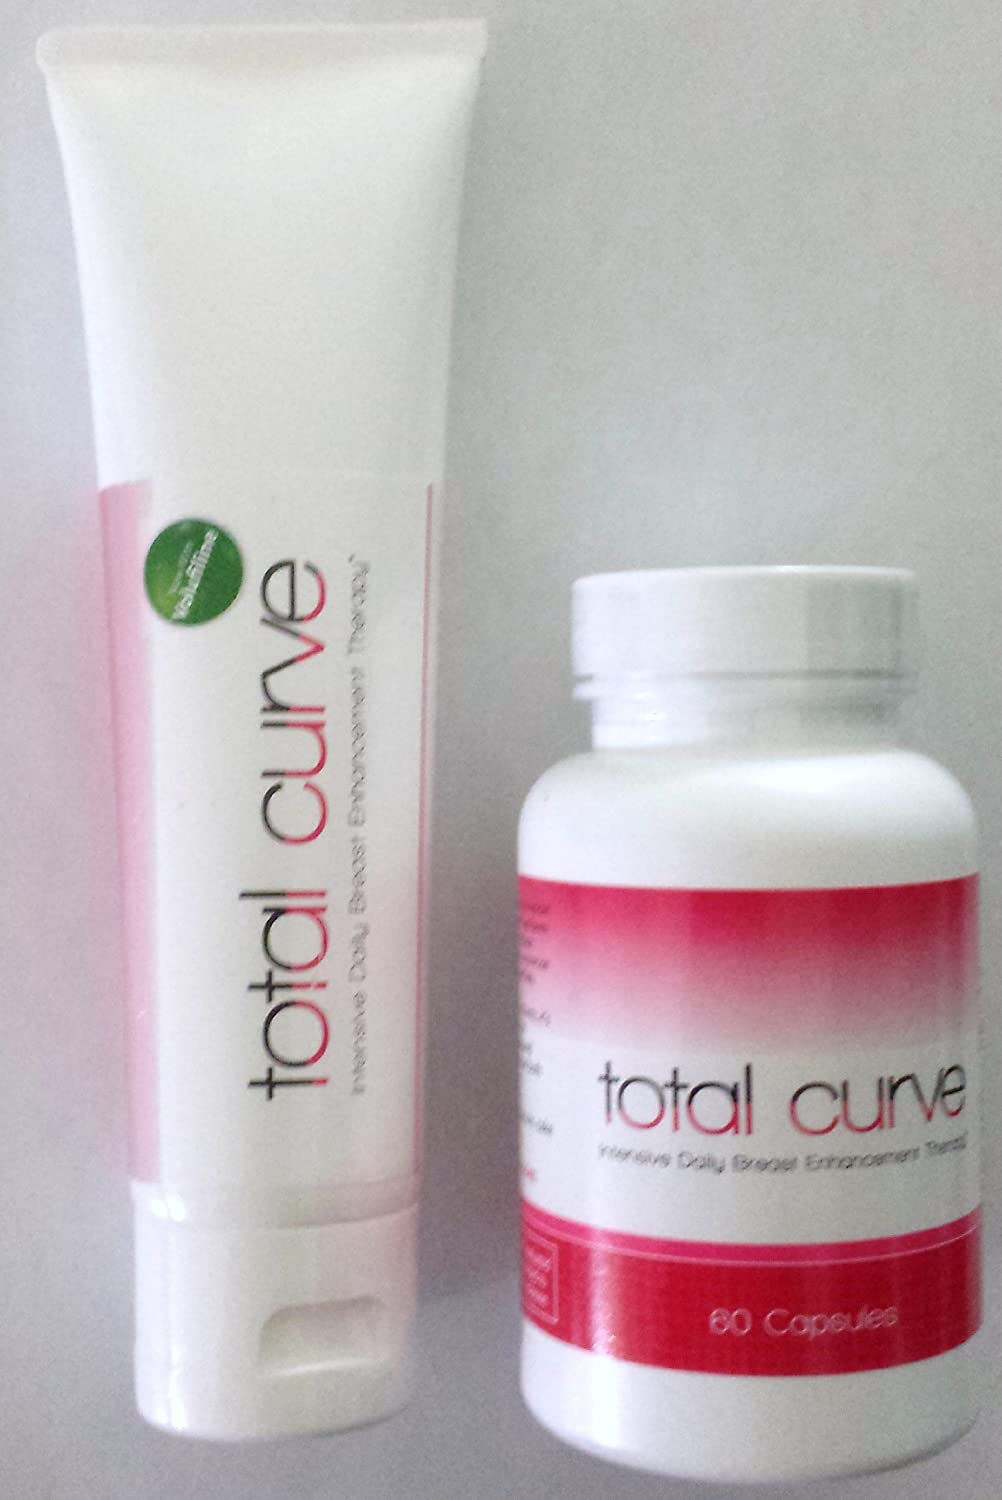 Total Curve Breast Enhancement Therapy Cream & Bust Pills - Accudata Marketing Group, LLC